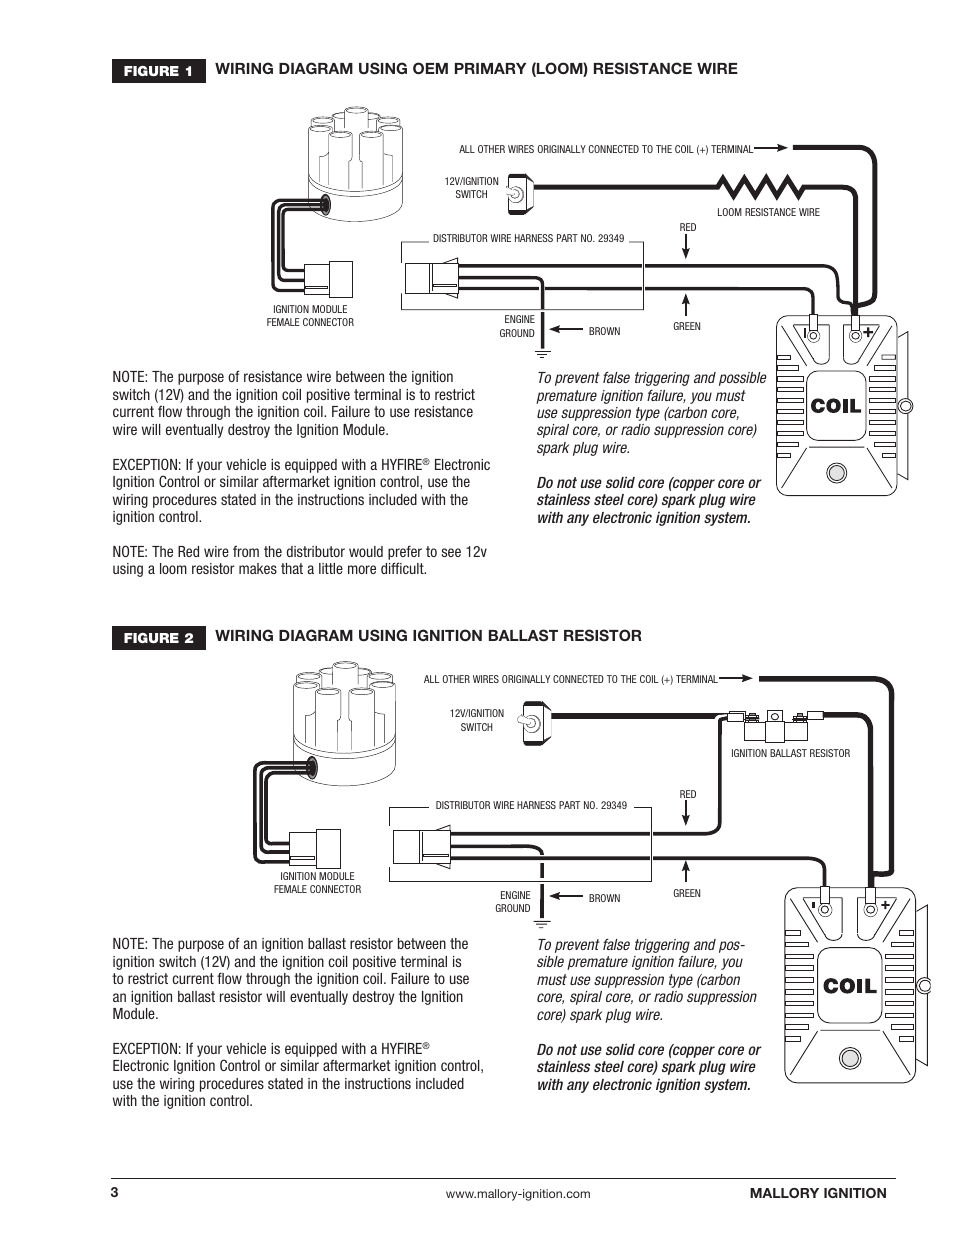 Mallory Magnetic Breakerless Wiring Diagram. mallory ignition mallory  magnetic breakerless distributor. mallory magnetic breakerless wiring  harness new ebay. 1974 mopar parts 5057801 1959 79 mallory series 50. mallory  unilite and magnetic breakerlessA.2002-acura-tl-radio.info. All Rights Reserved.